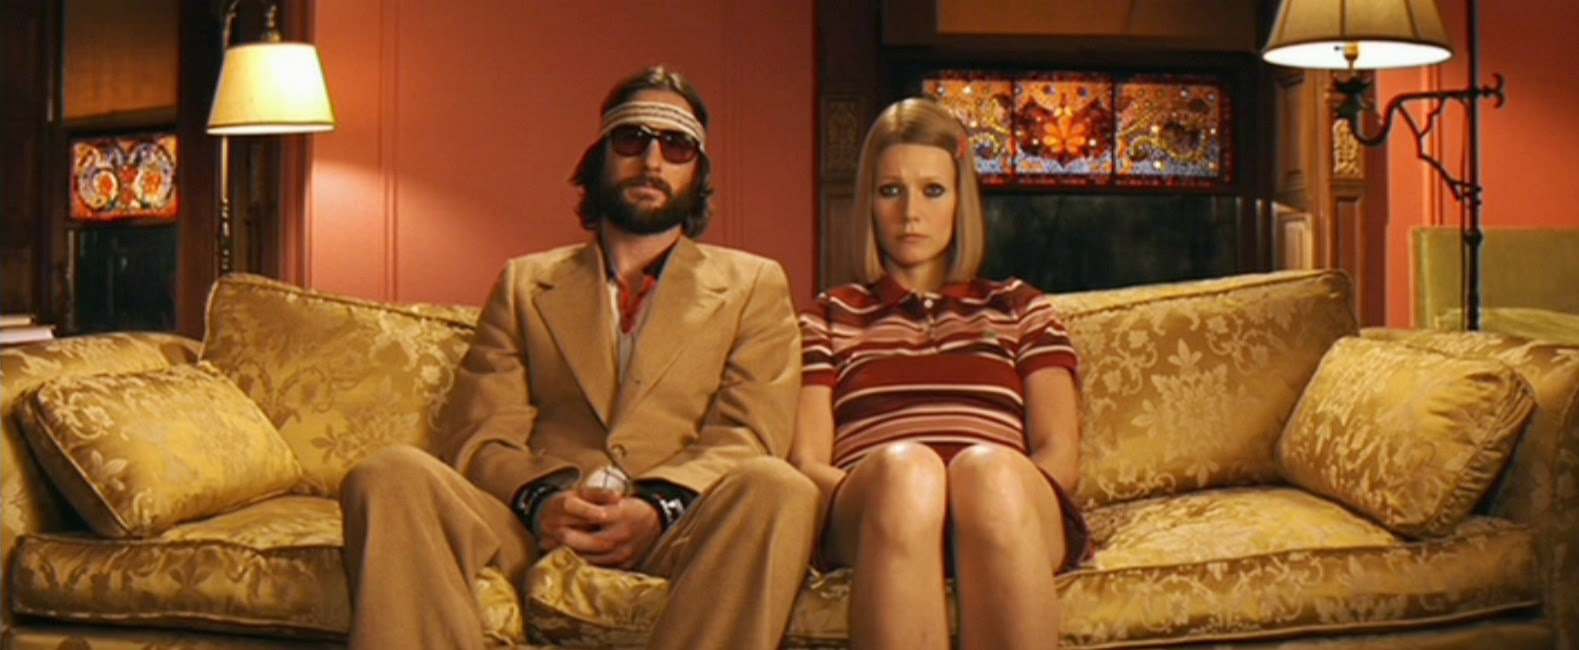 young blood, old soul: HALLOWEEN: Wes Anderson Edition